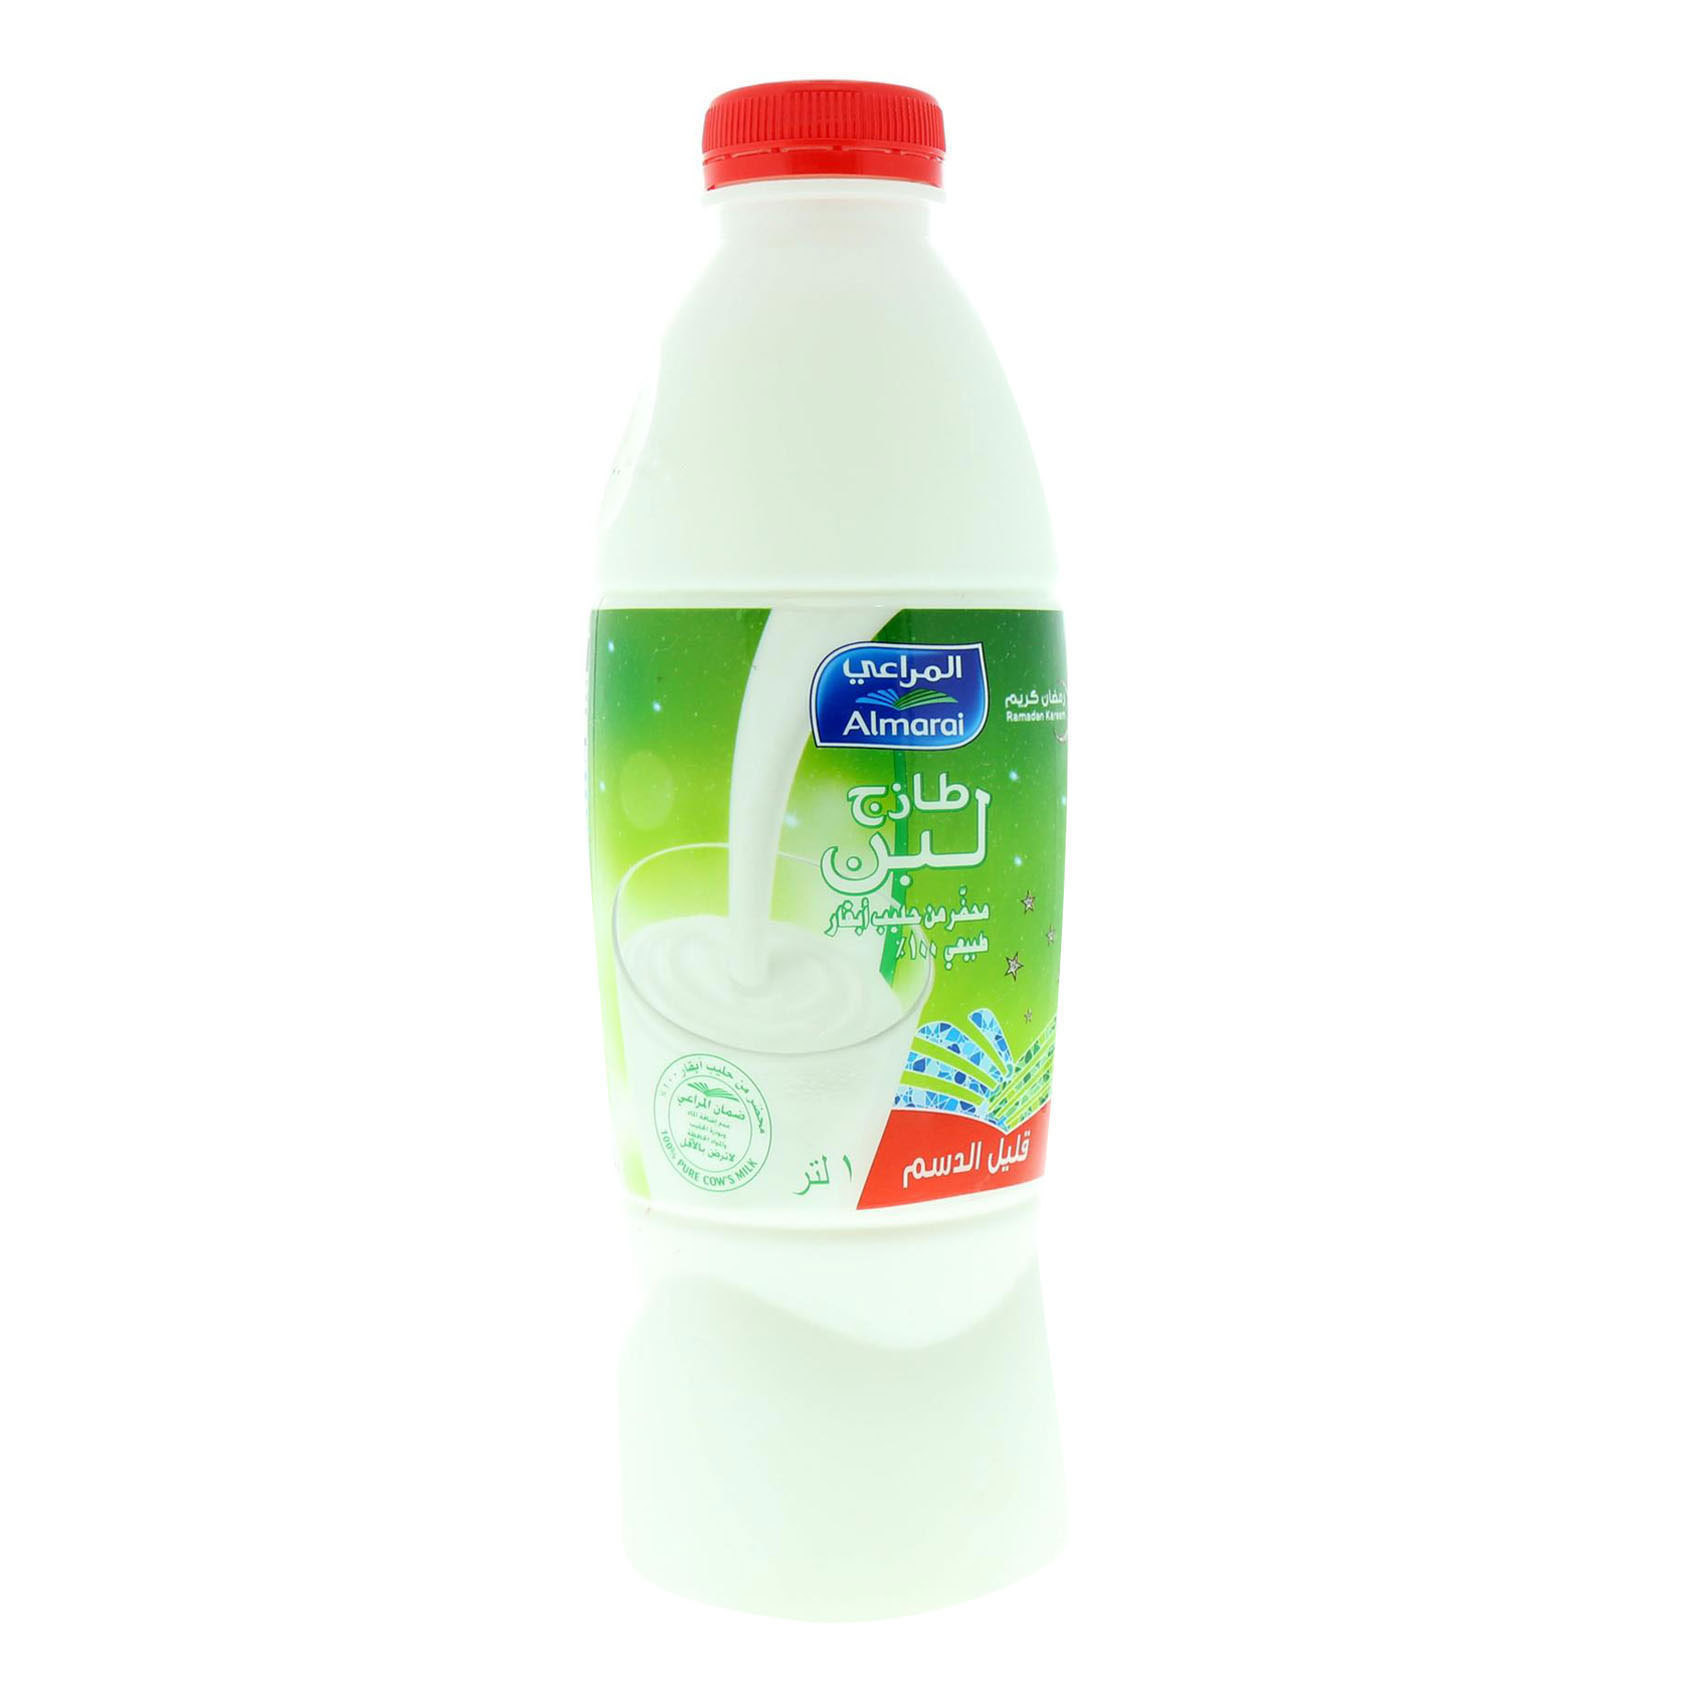 AL MARAI LABAN LOW FAT 1L